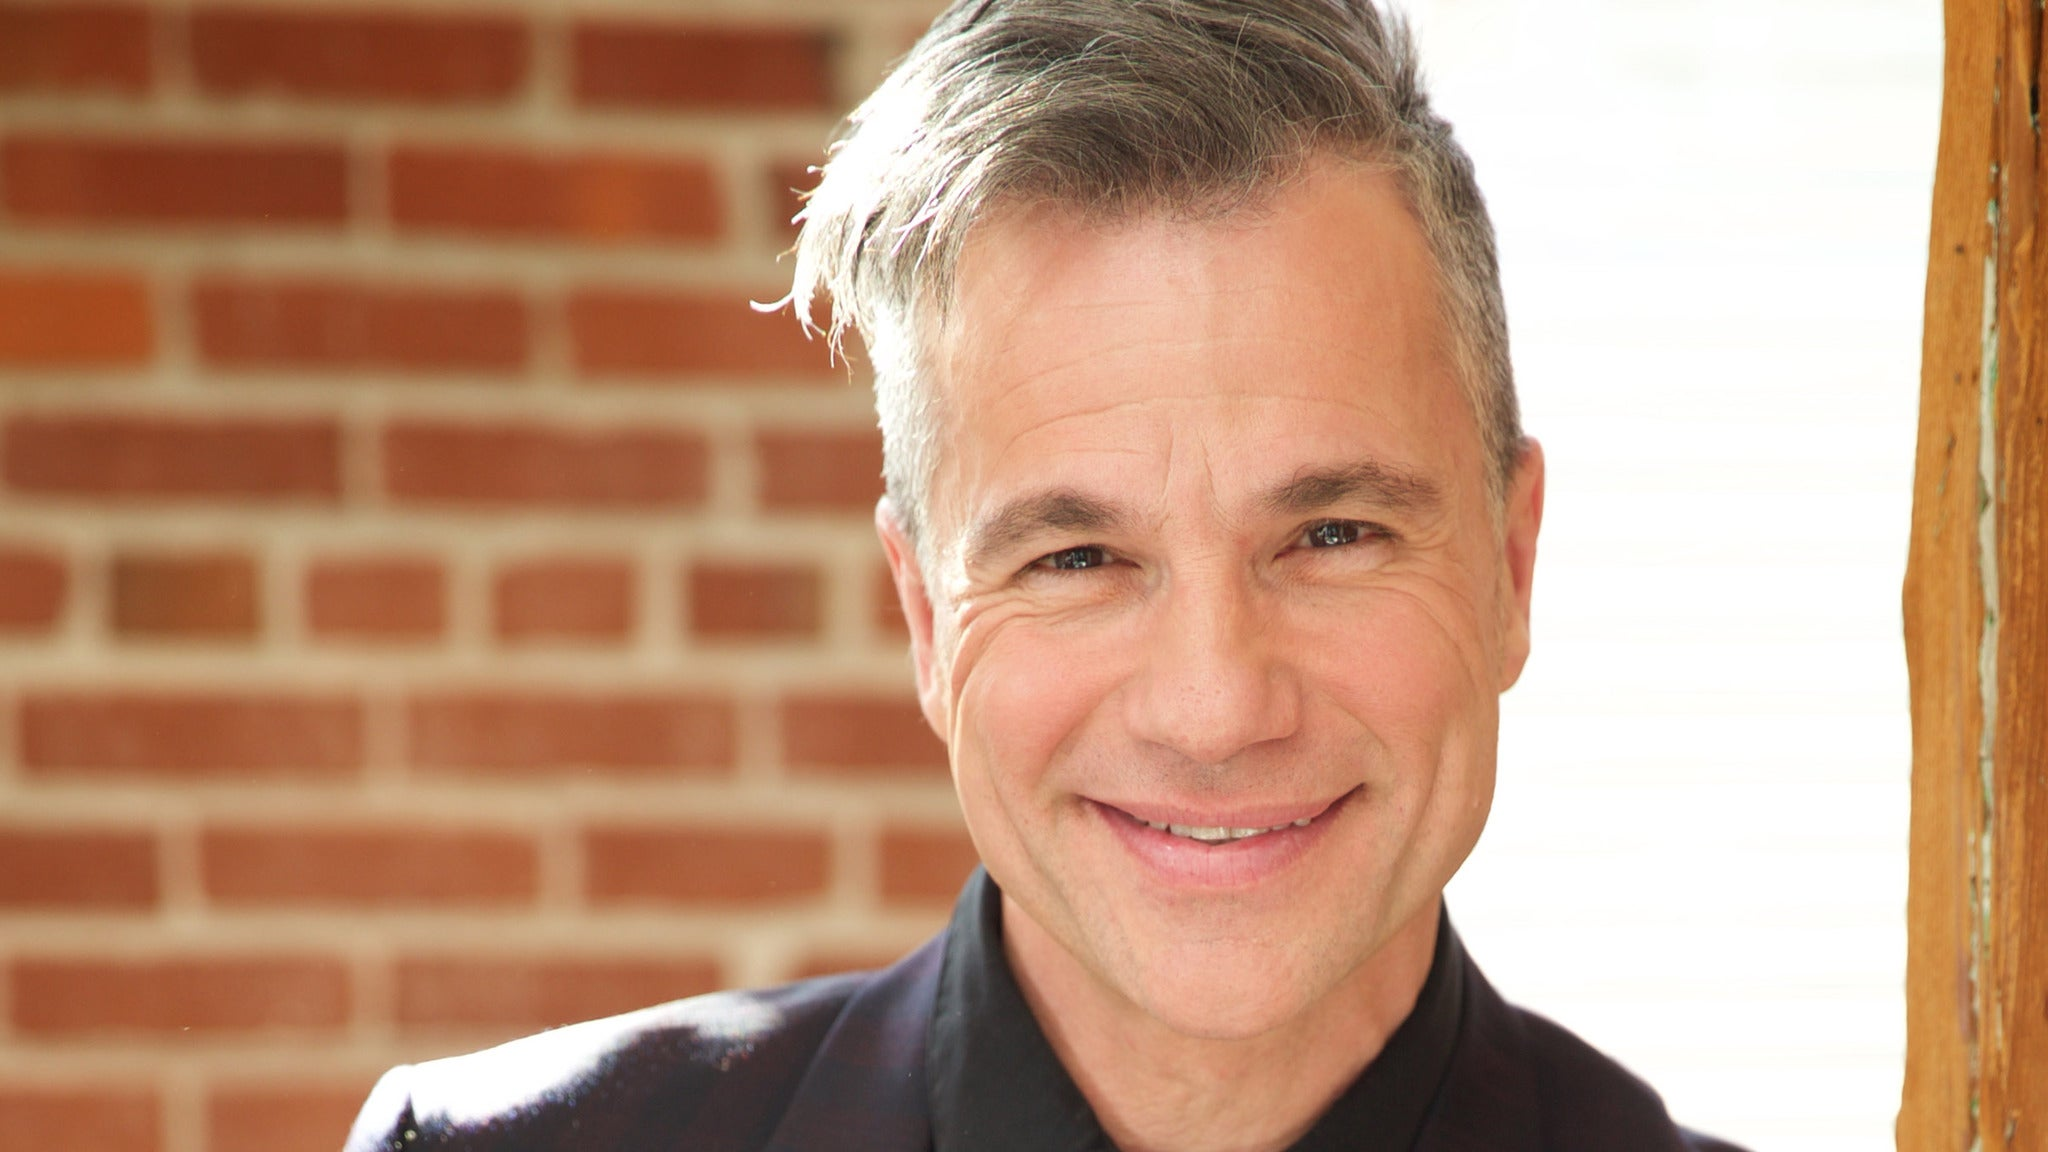 Image used with permission from Ticketmaster | Bruno Pelletier - Sous Influences tickets